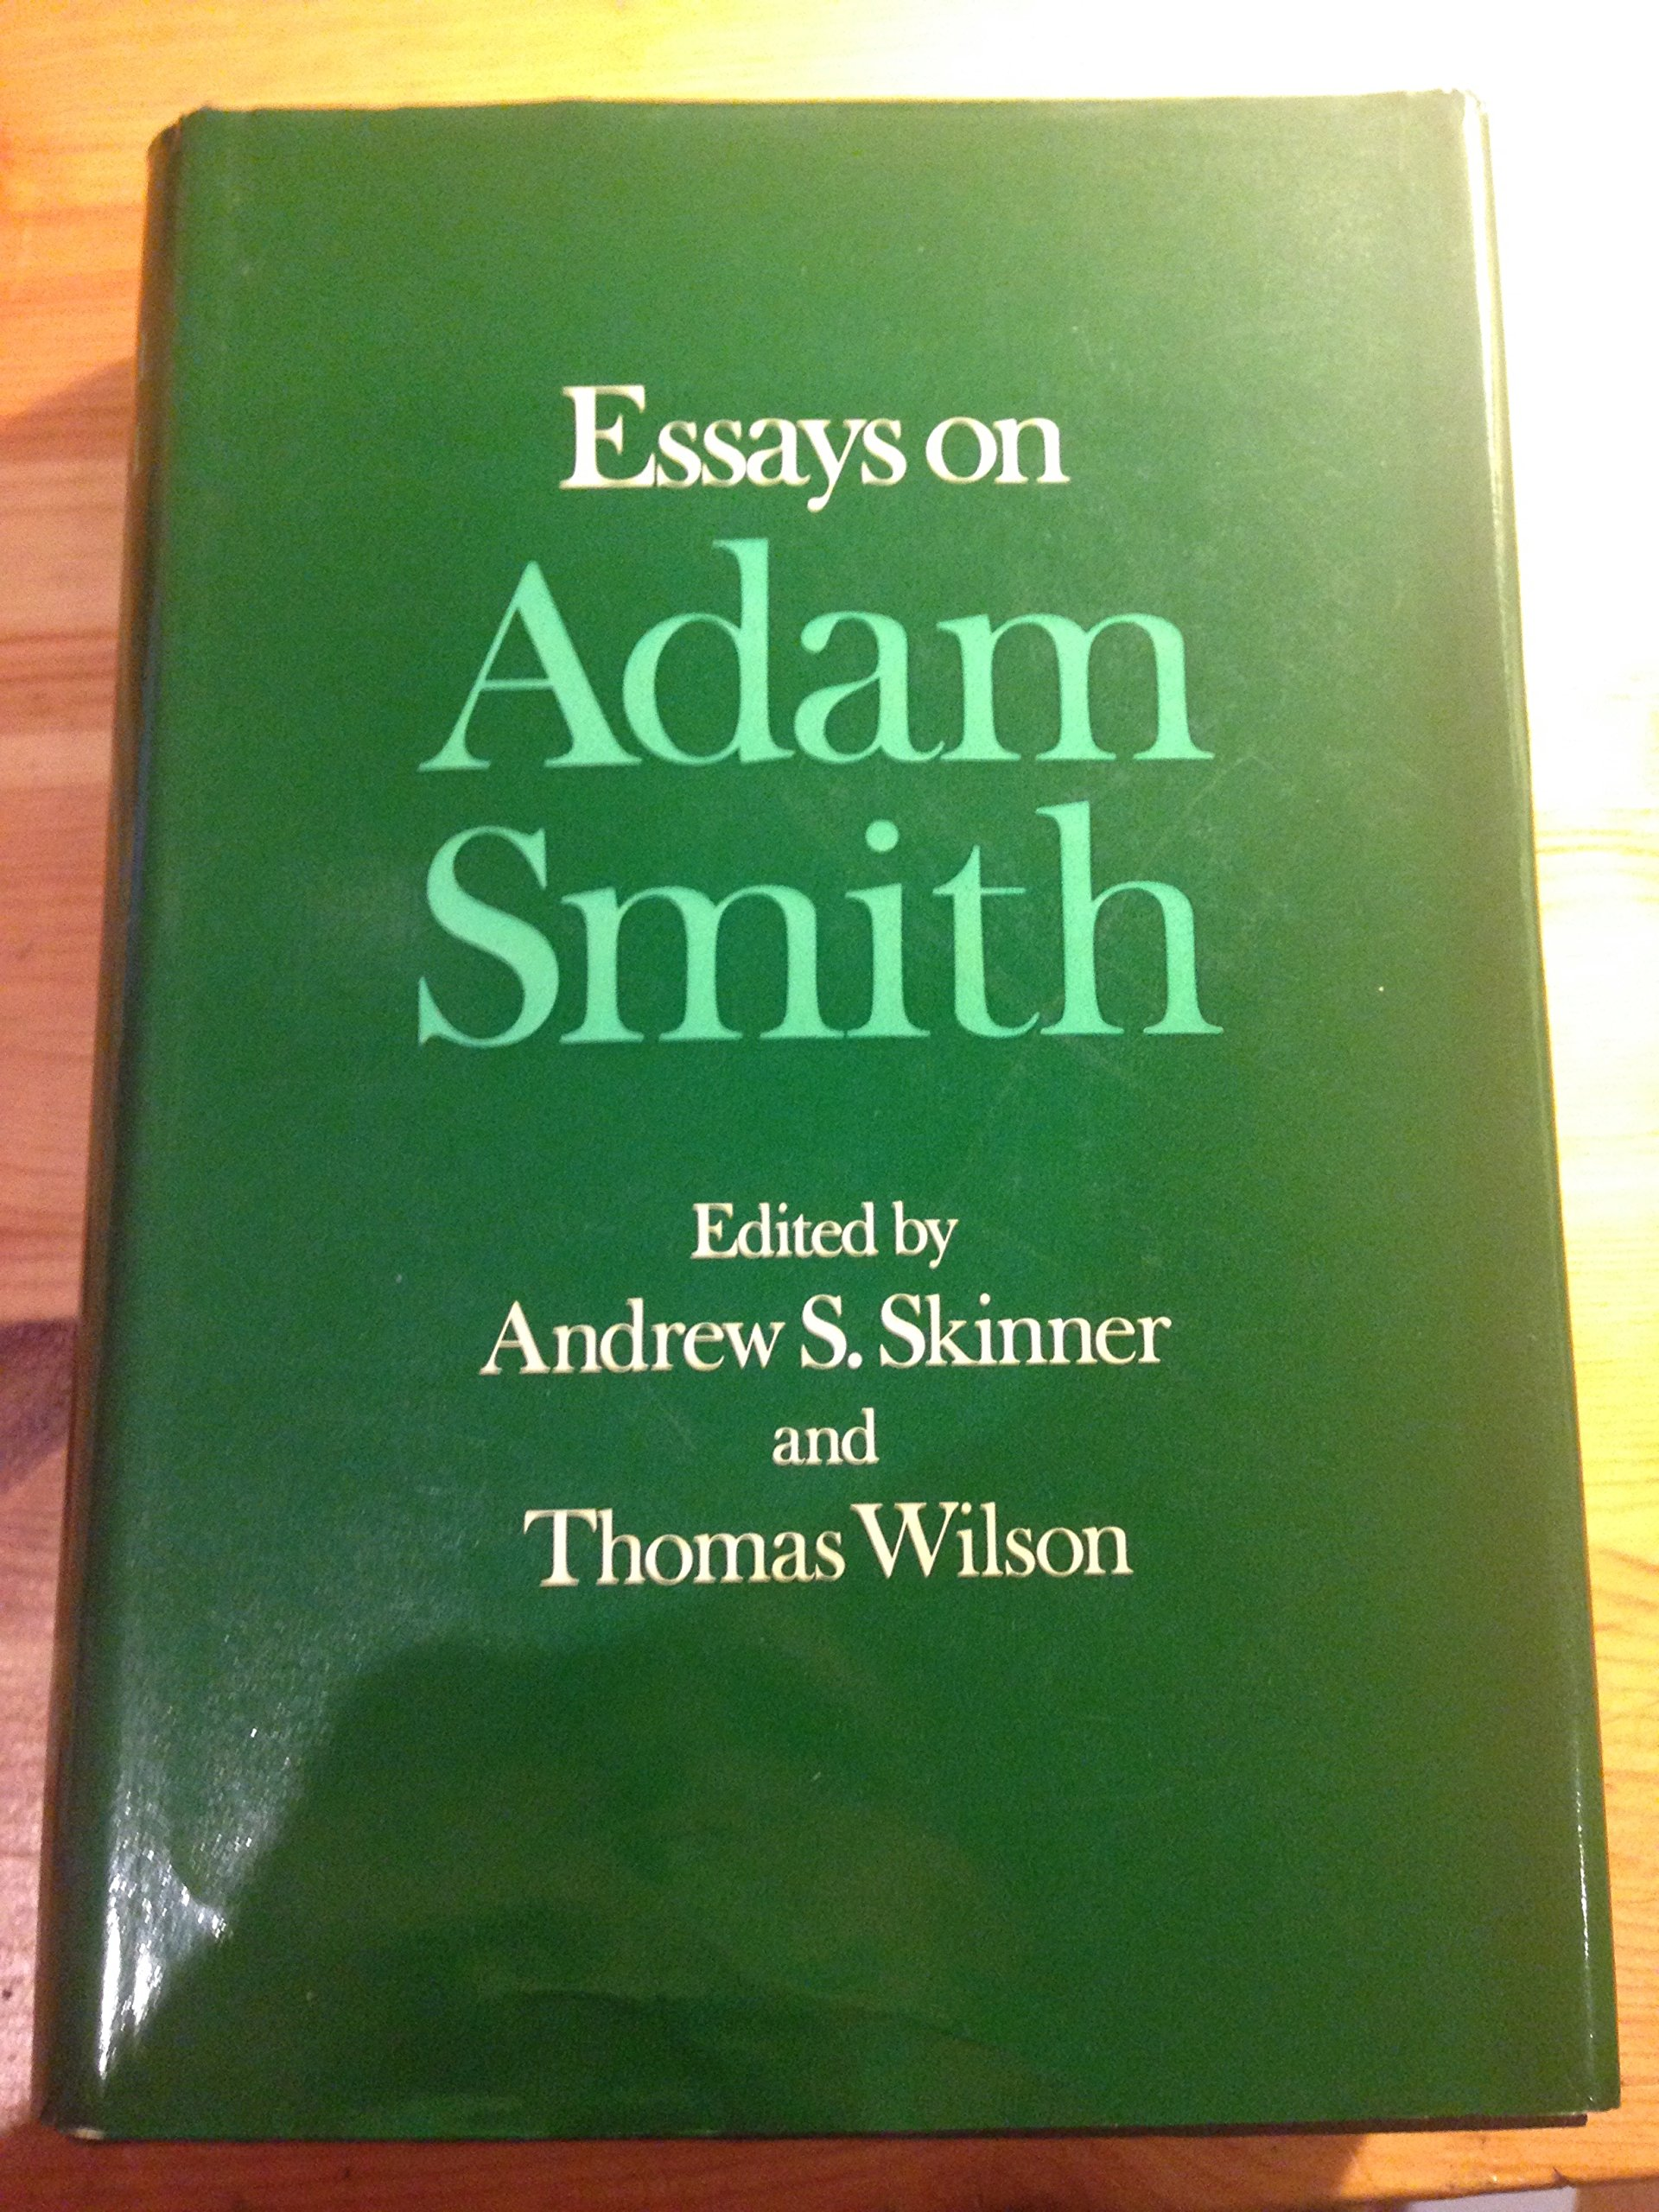 College Stress Essay Essays On Adam Smith  Edited By Andrew S Skinner And Thomas Wilson  Andrew S Thomas Wilson Eds Skinner  Amazoncom Books How To Write Definition Essay also Law And Morality Essay Essays On Adam Smith  Edited By Andrew S Skinner And Thomas Wilson  The Value Of A College Education Essay